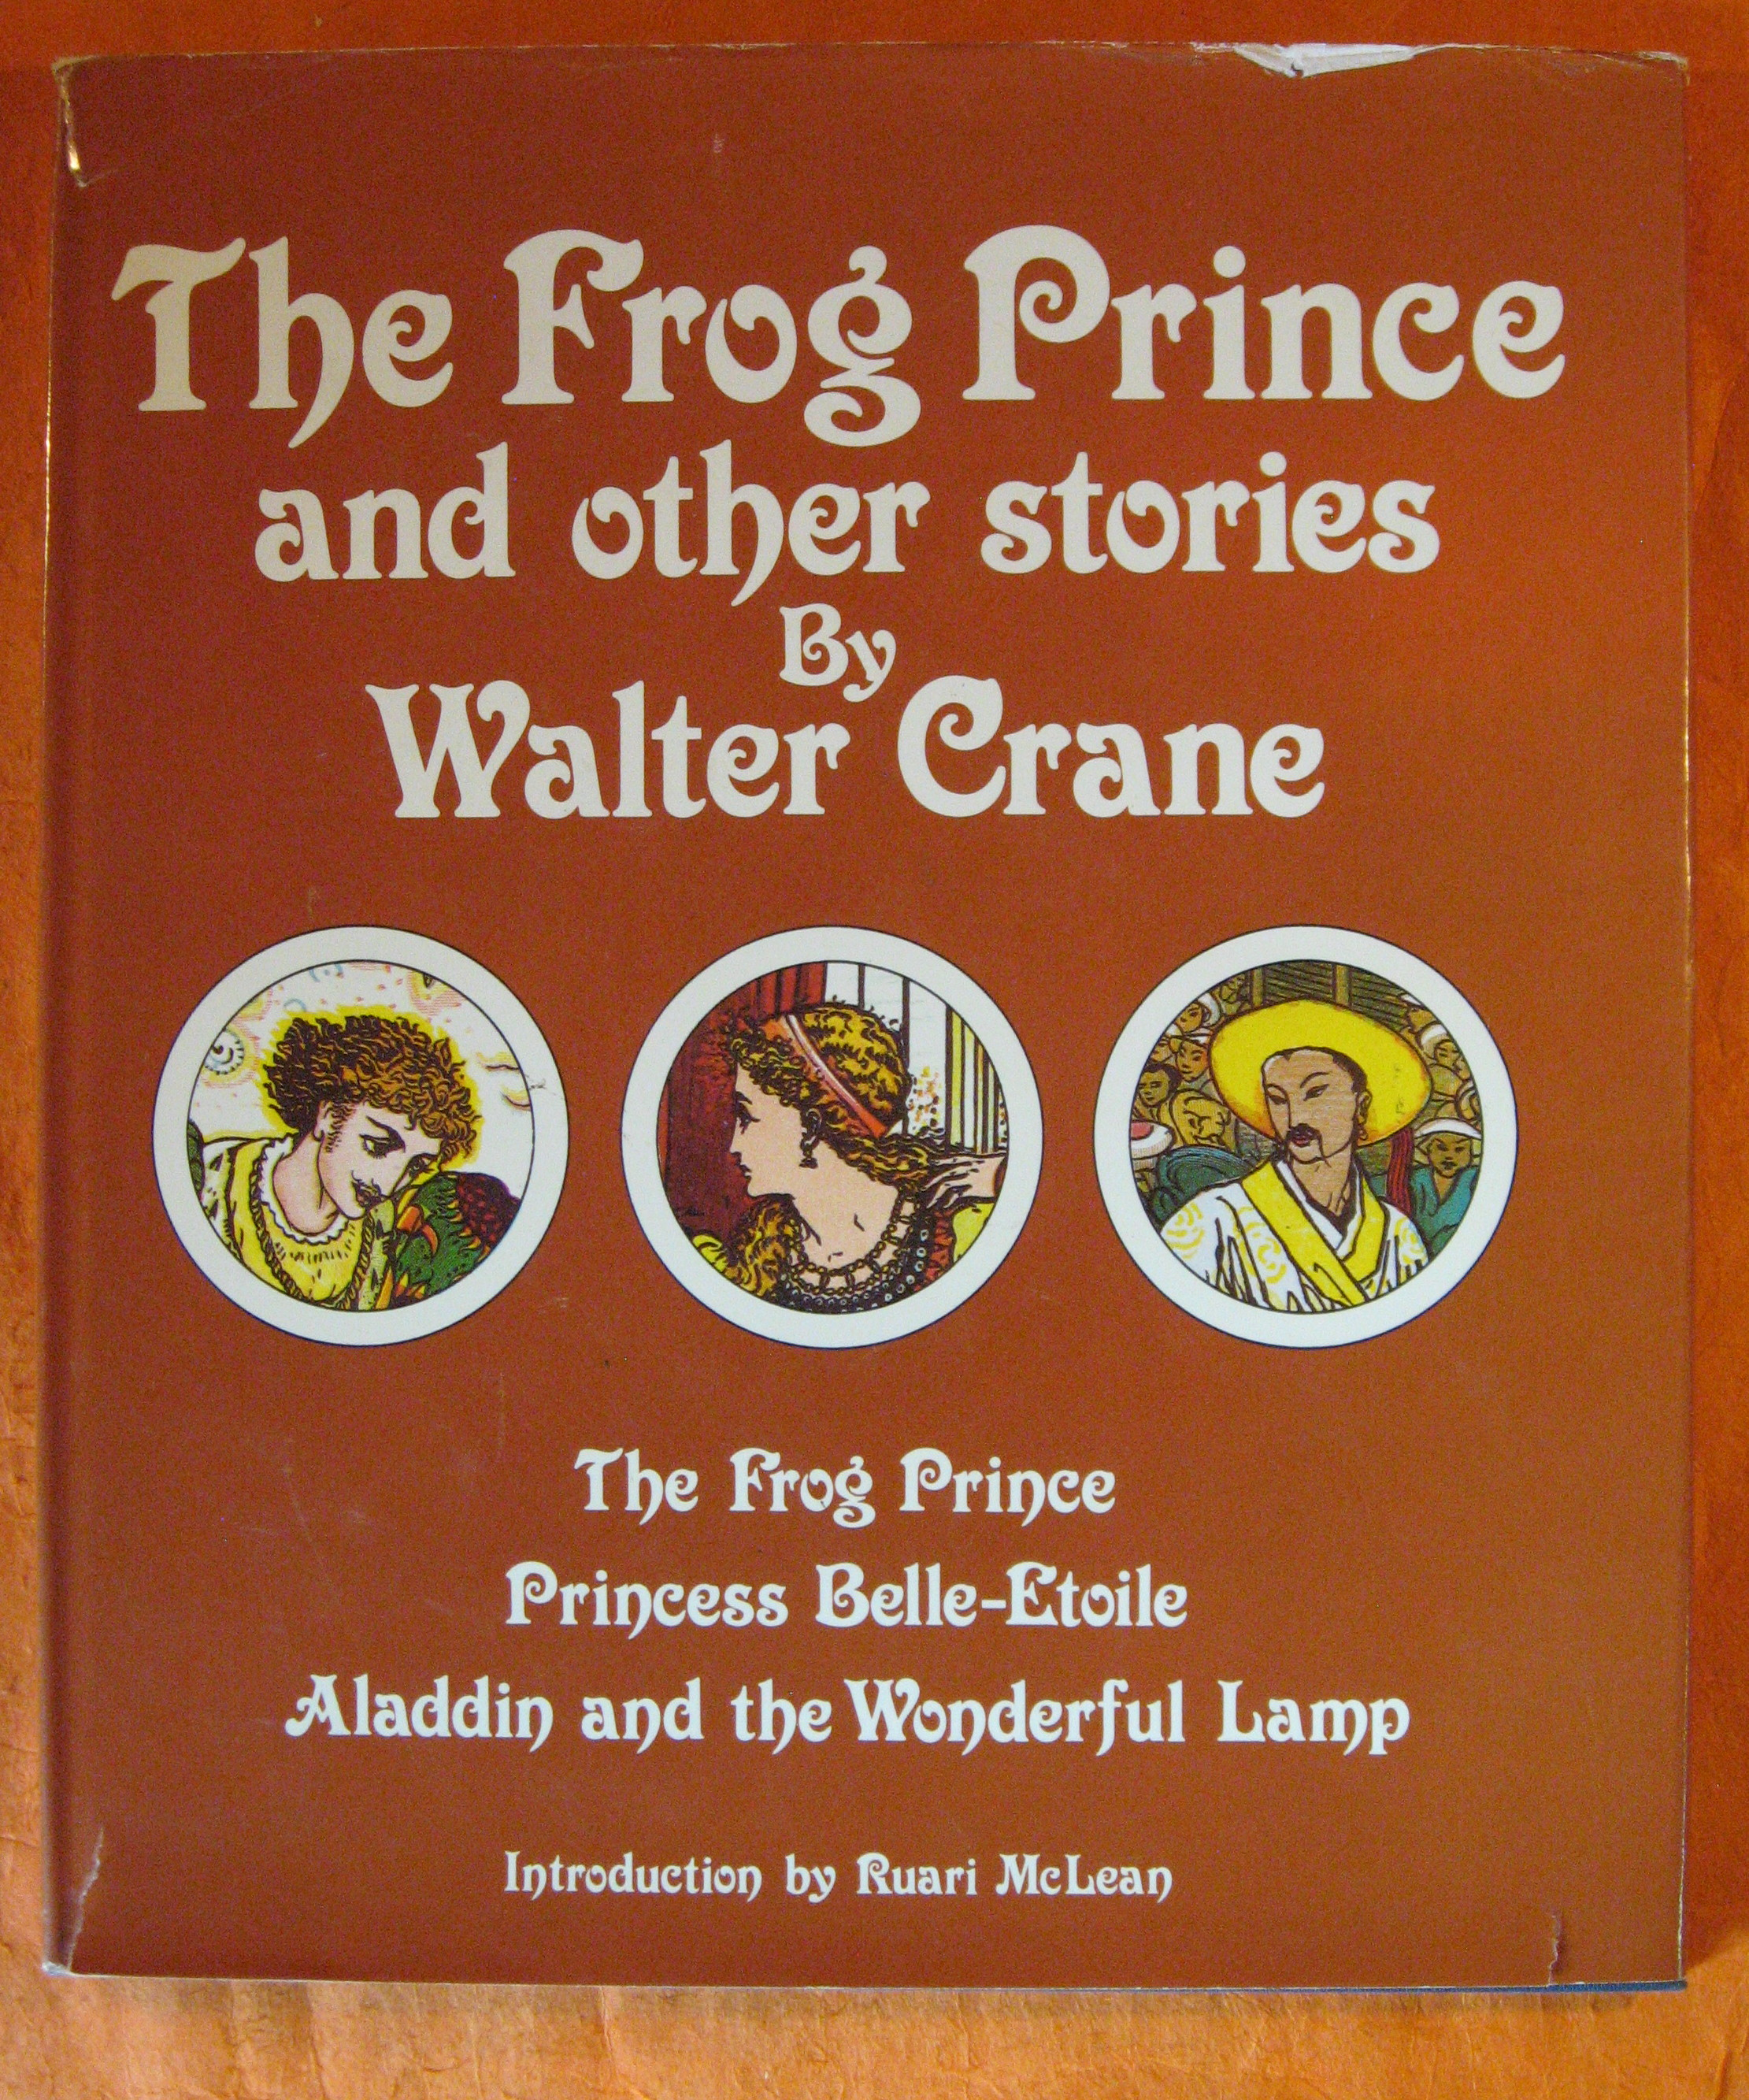 Frog Prince and Other Stories by Walter Crane